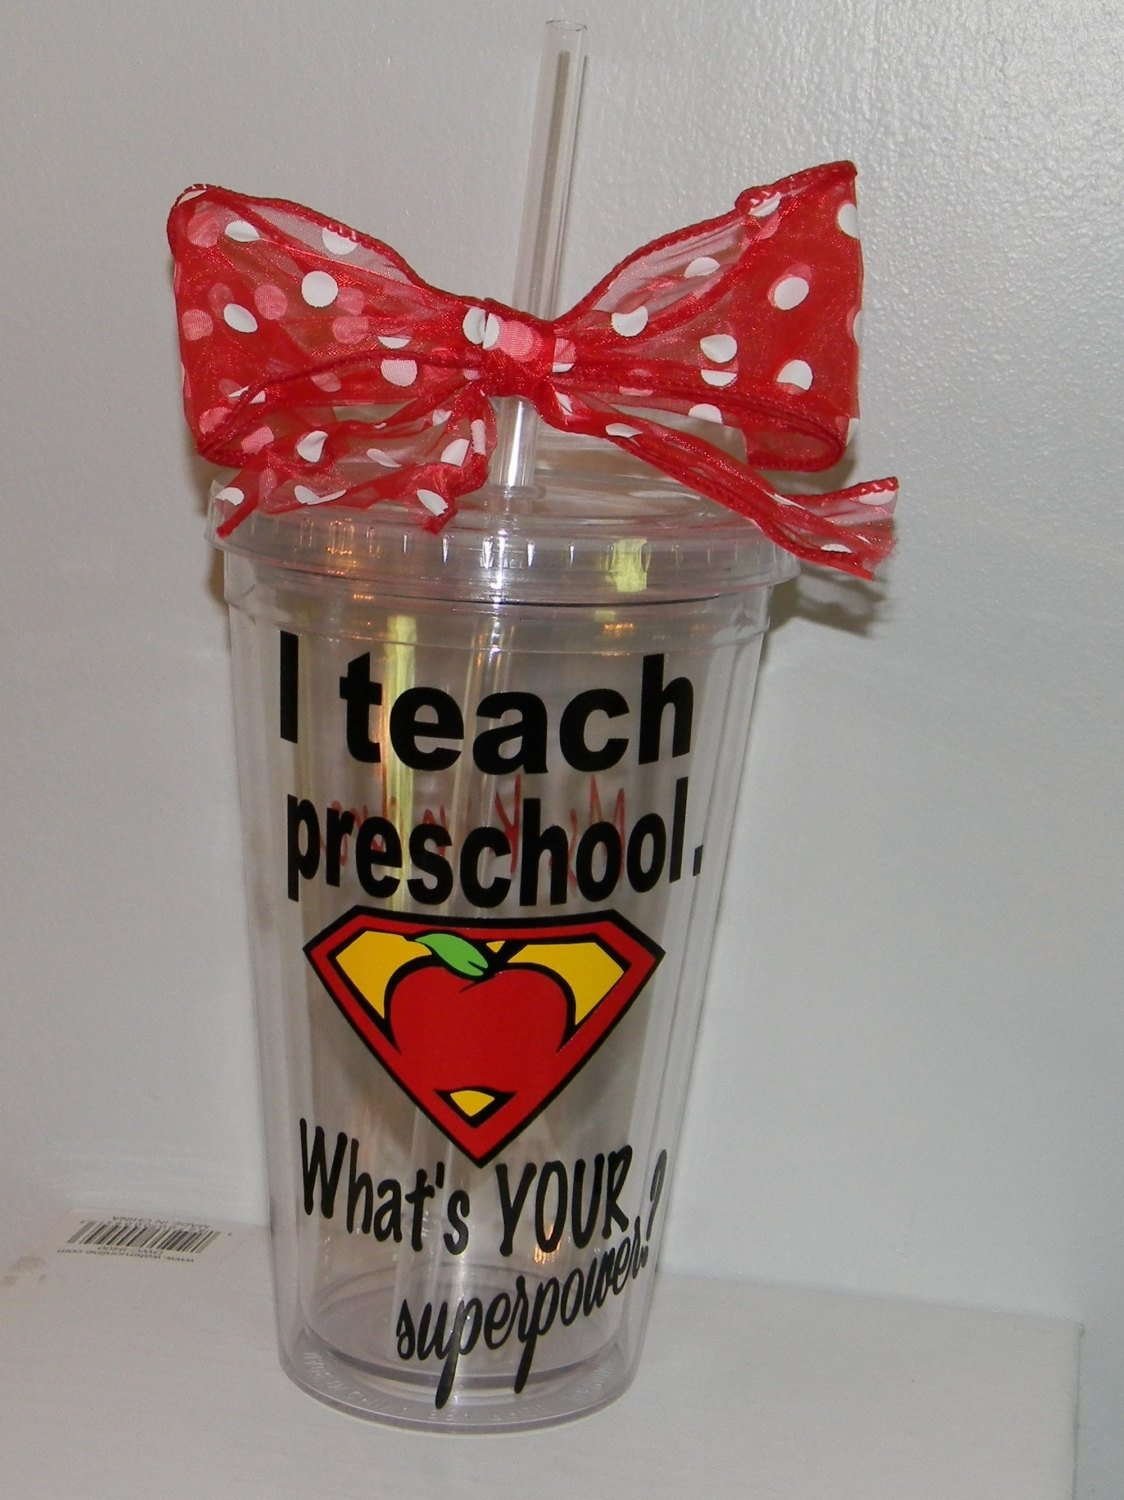 10 Lovable Christmas Gift Ideas For Daycare Teachers the most favorite daycare teacher gift ideas for unforgettable 2020